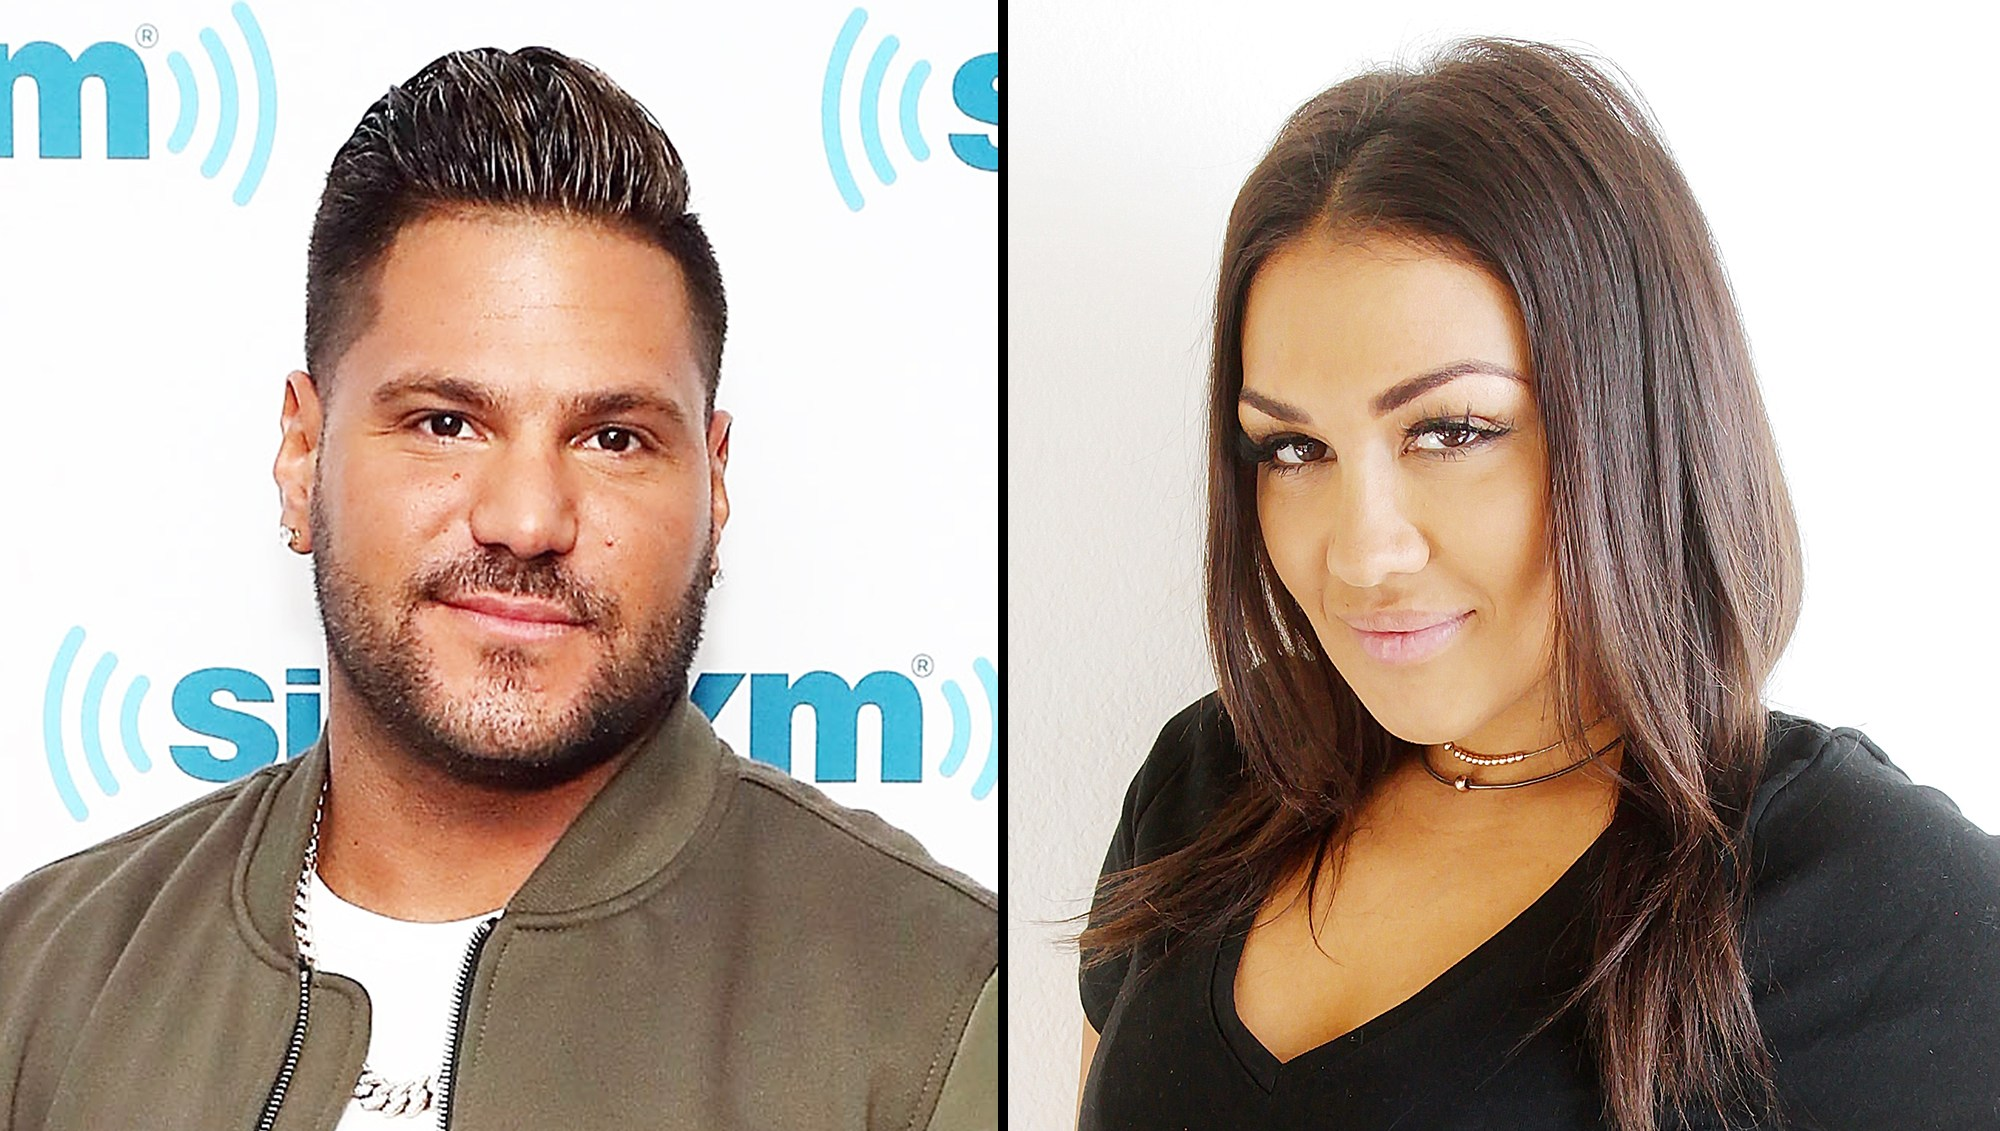 Ronnie Ortiz-Magro Files Restraining Order Against Jen Harley